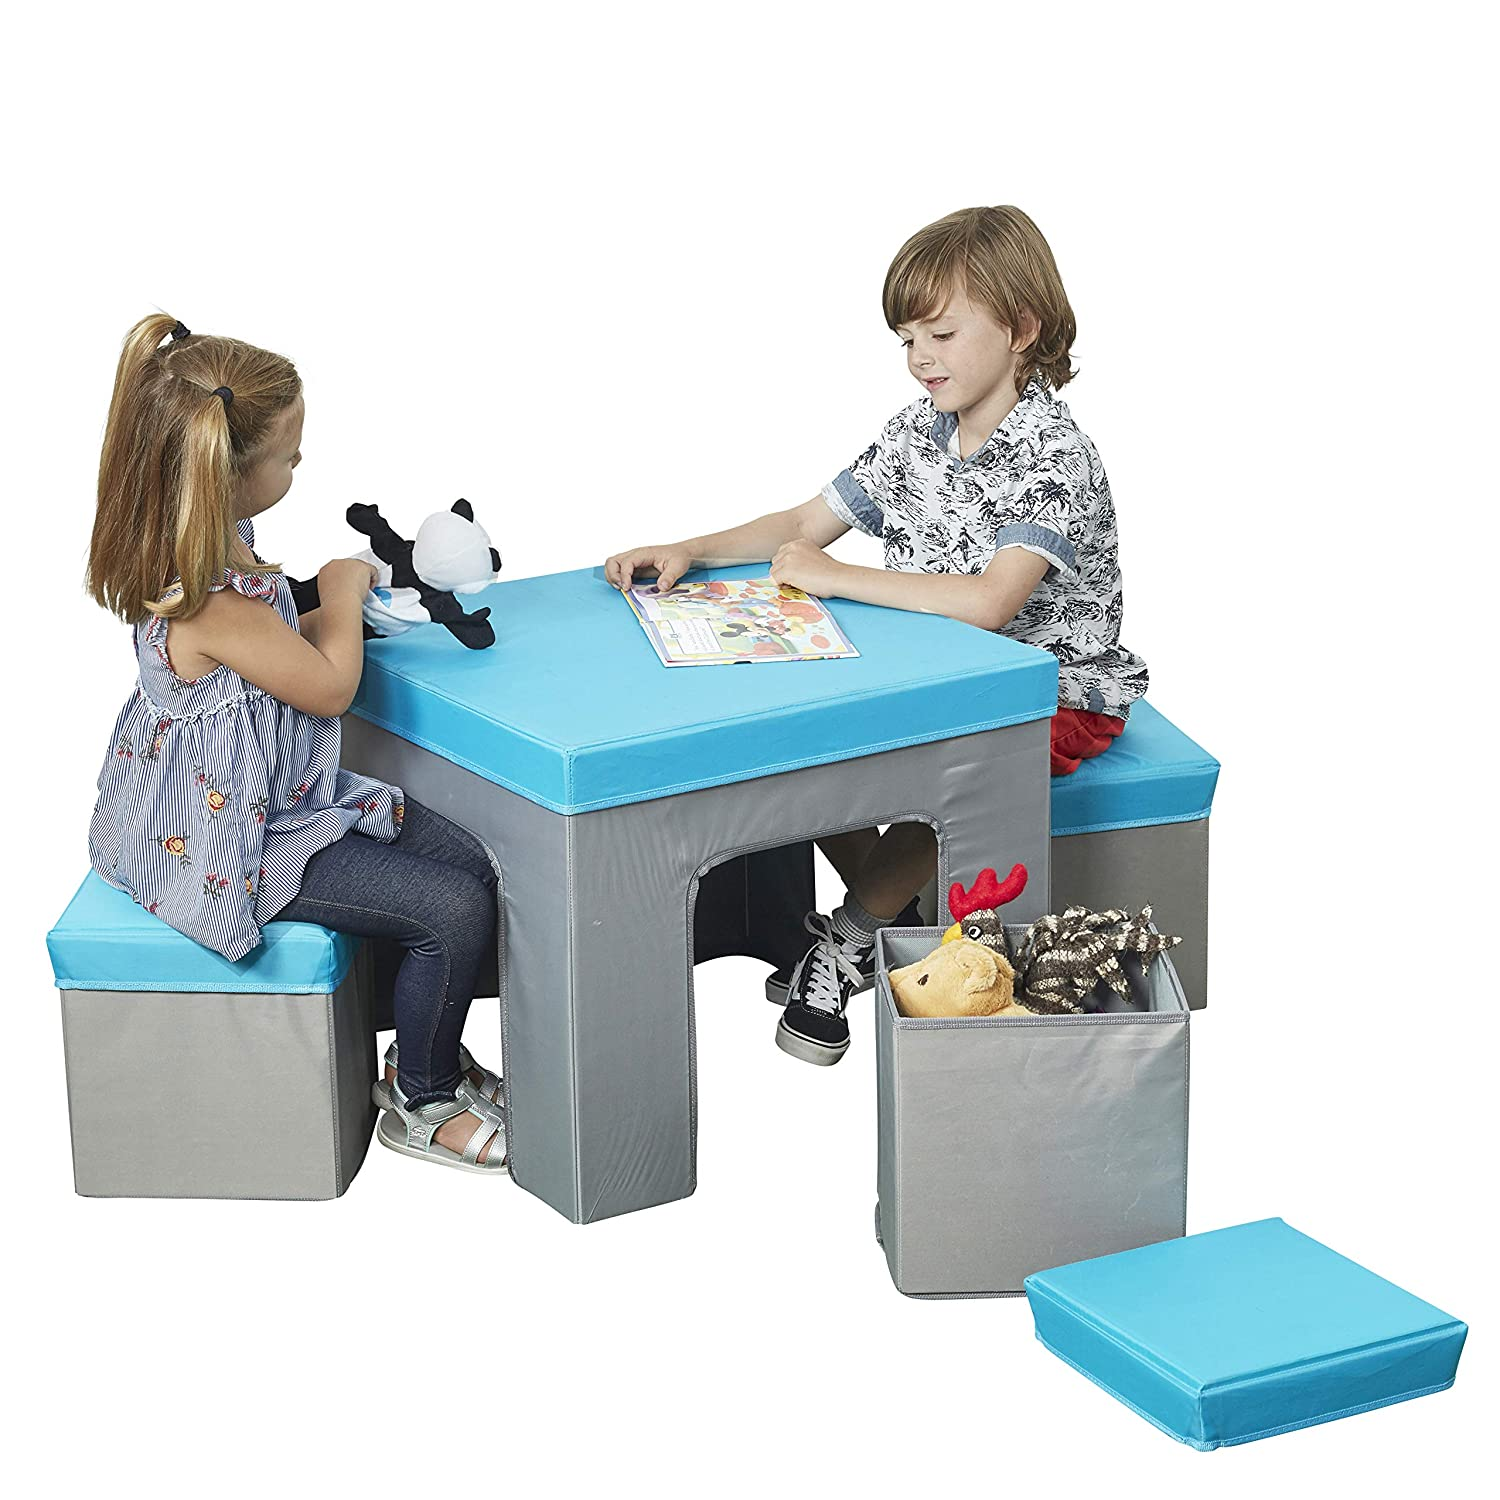 Sensational Ecr4Kids Multipurpose Folding Kids Table And Chair Set 5 Piece Furniture Set With Fabric Storage Ottomans Easy To Assemble Blue Grey Beatyapartments Chair Design Images Beatyapartmentscom